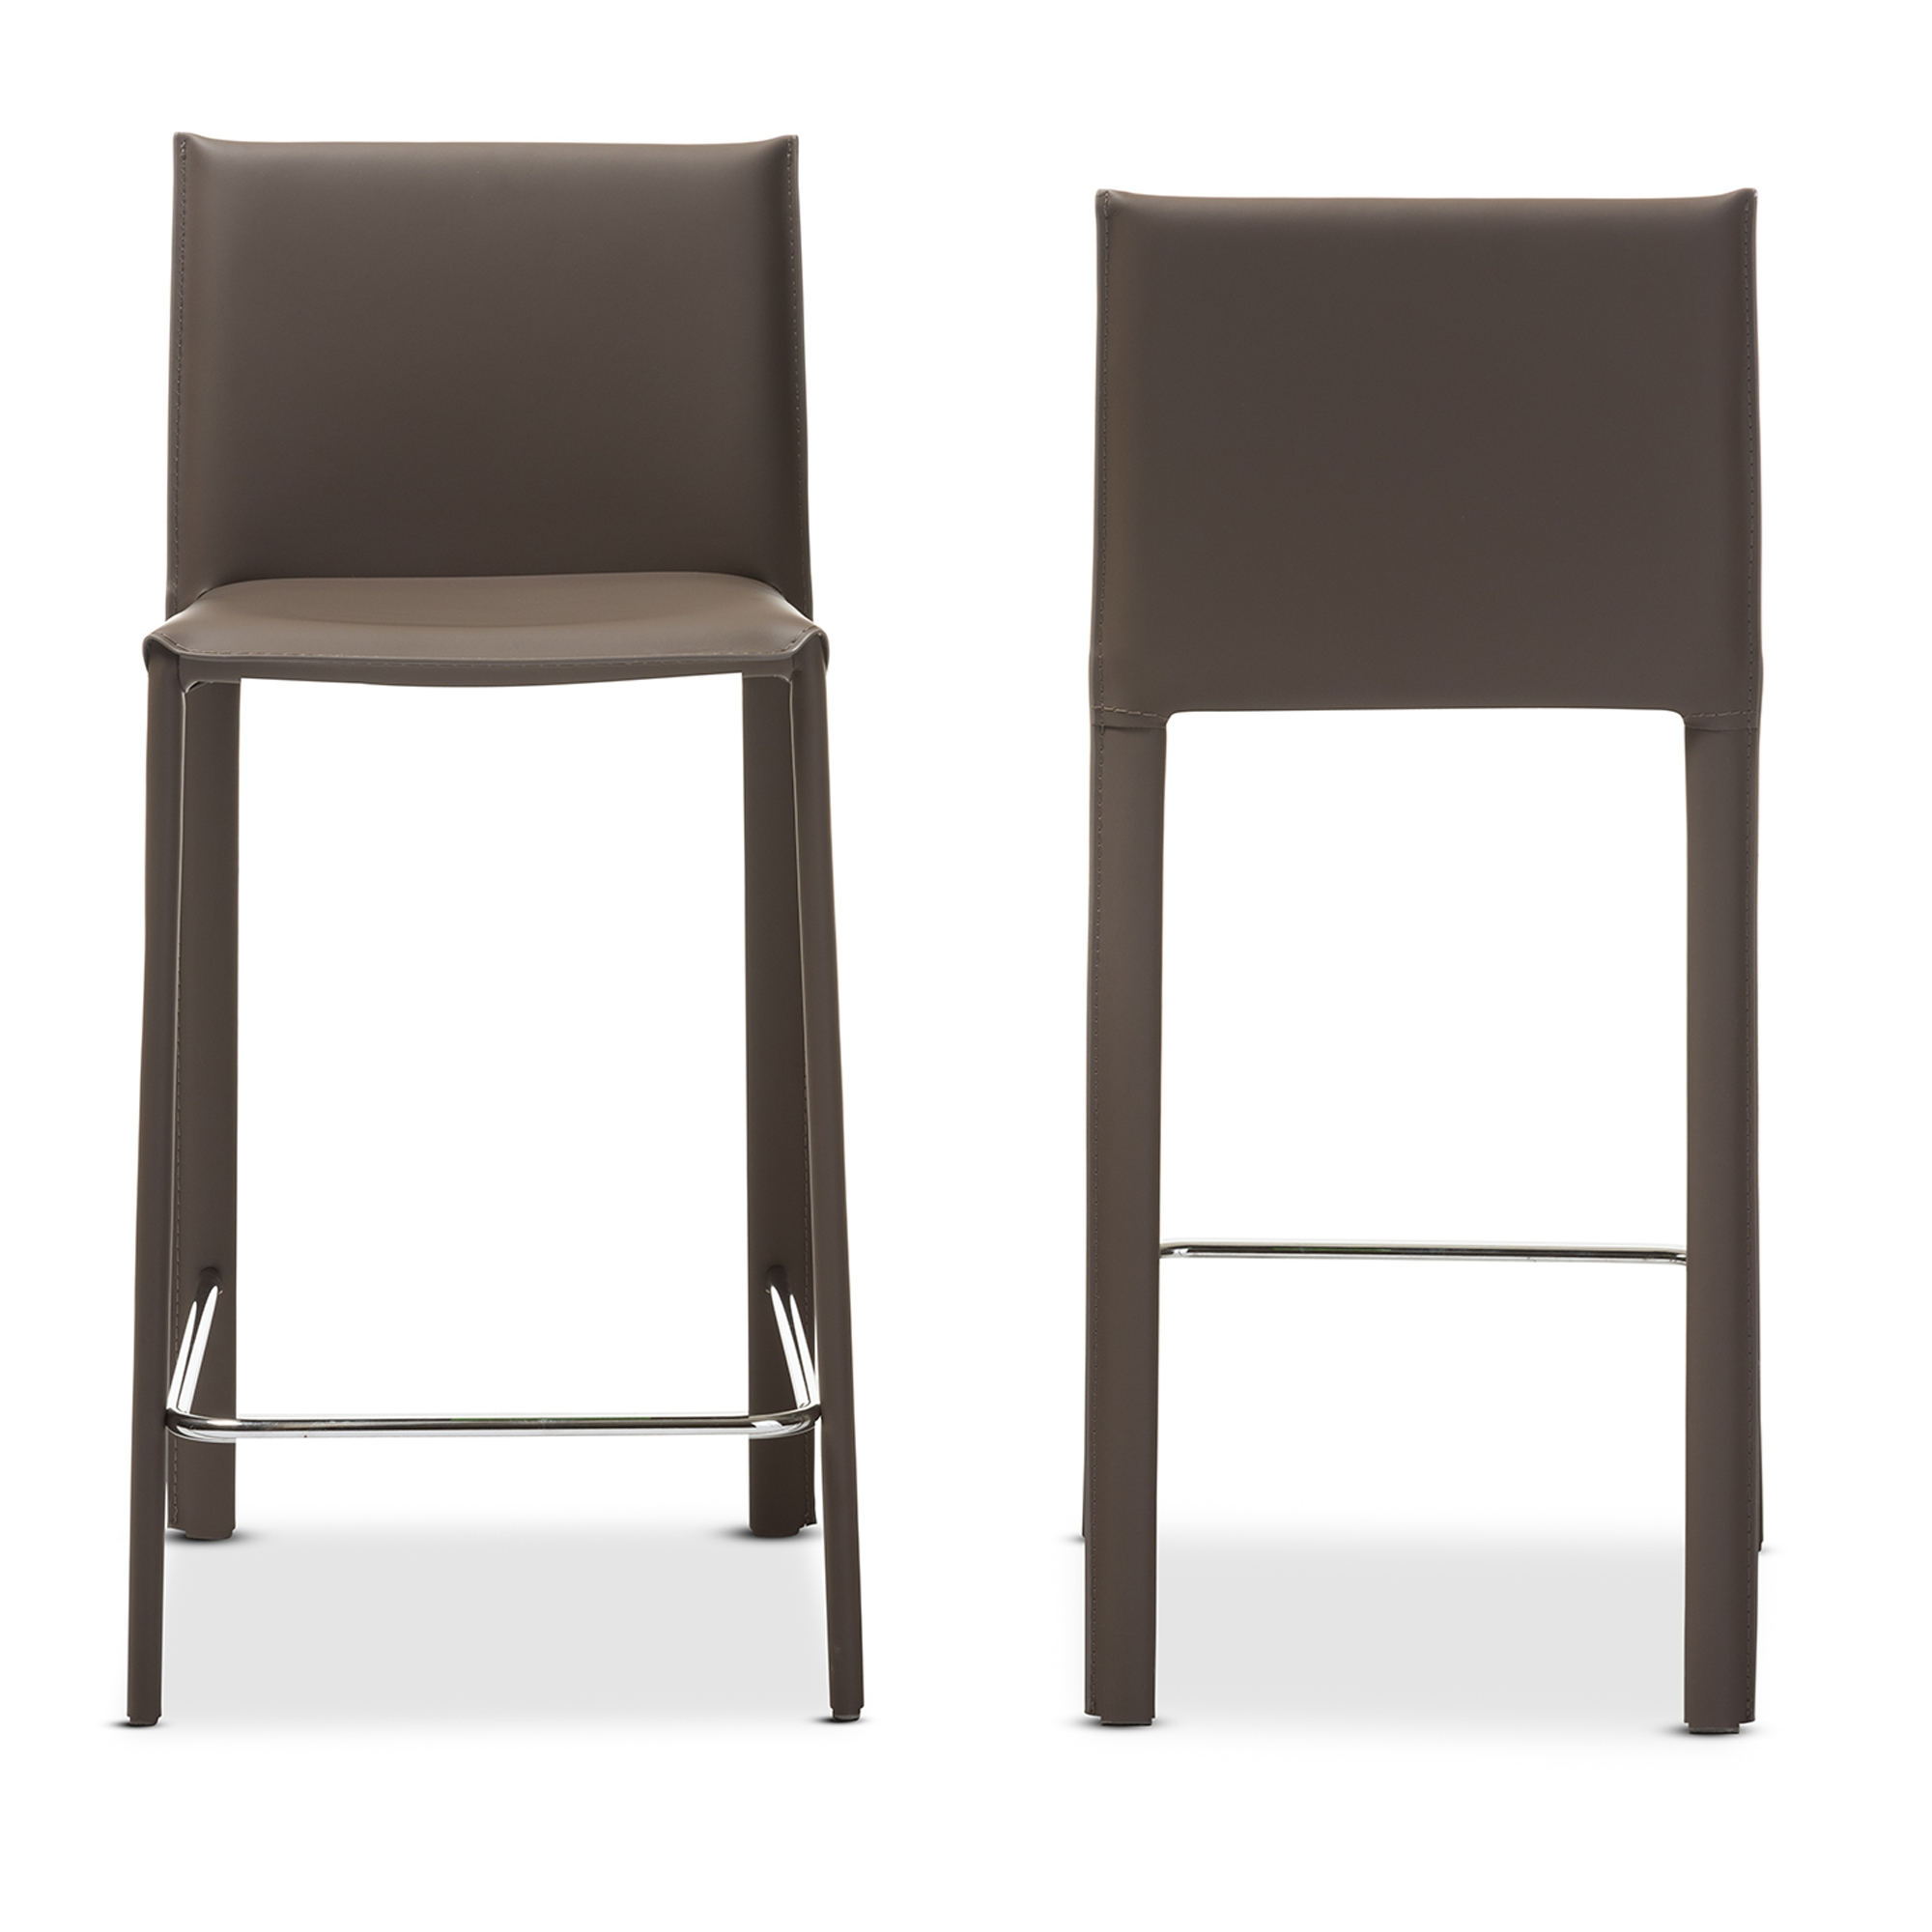 ... Baxton Studio Crawford Modern and Contemporary Taupe Leather Upholstered Counter Height Stool - BSOALC-1822A ...  sc 1 st  Baxton Studio Outlet & Baxton Studio Crawford Modern and Contemporary Taupe Leather ... islam-shia.org